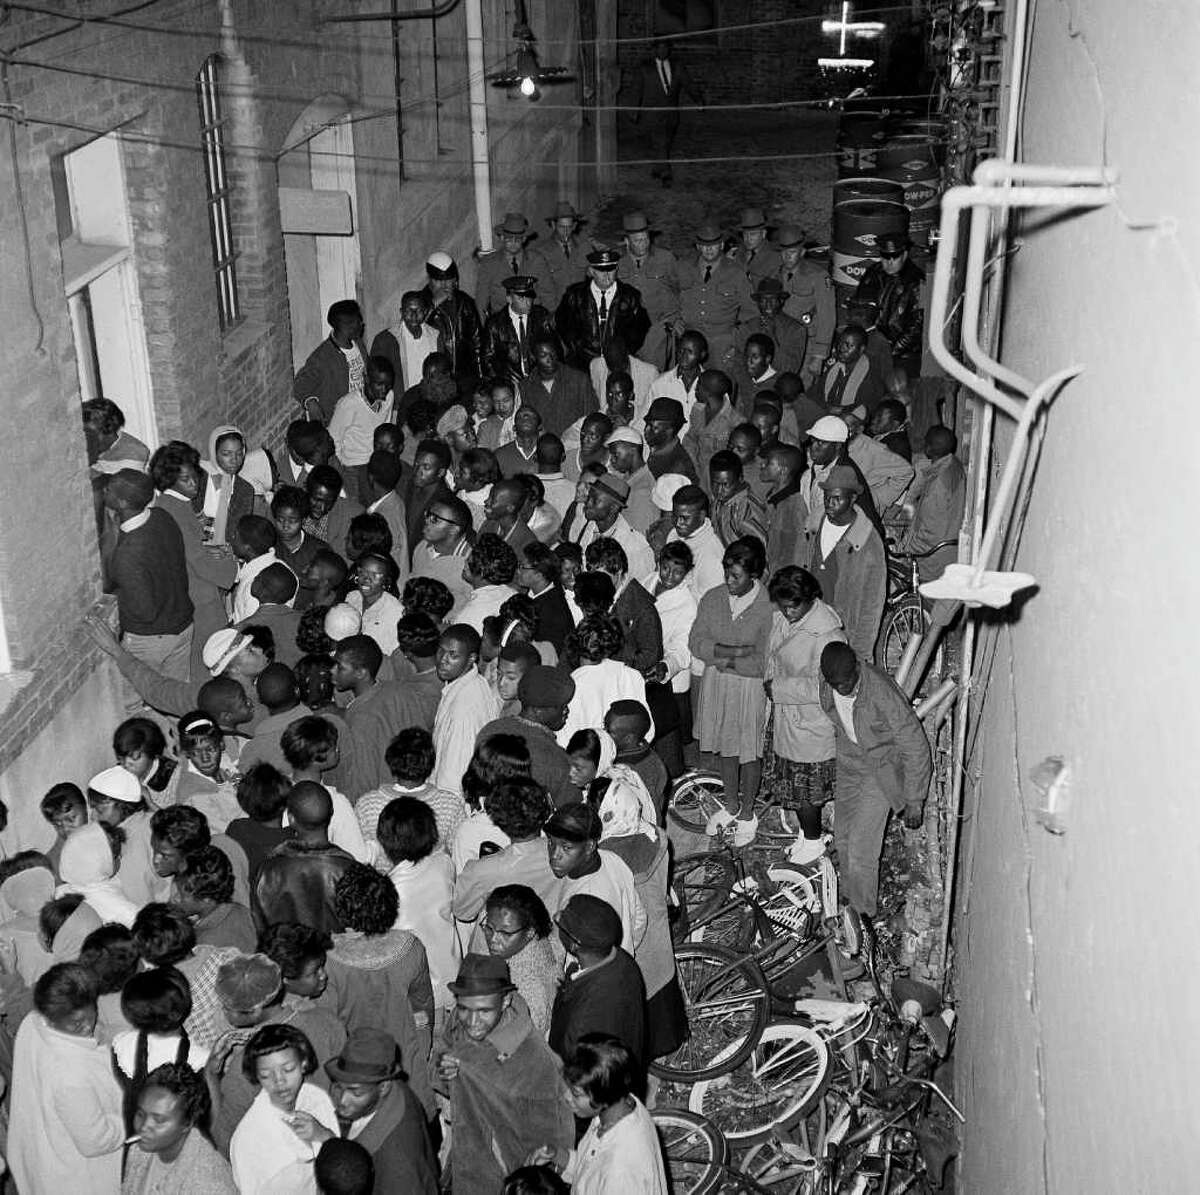 Over 200 blacks are shown as they were arrested in Albany, Ga. after staging a demonstration in front of City Hall protesting against the trial of Freedom Riders arrested here earlier, Dec. 13, 1961. Nearly 500 have been arrested this week. (AP Photo/Horace Cort)